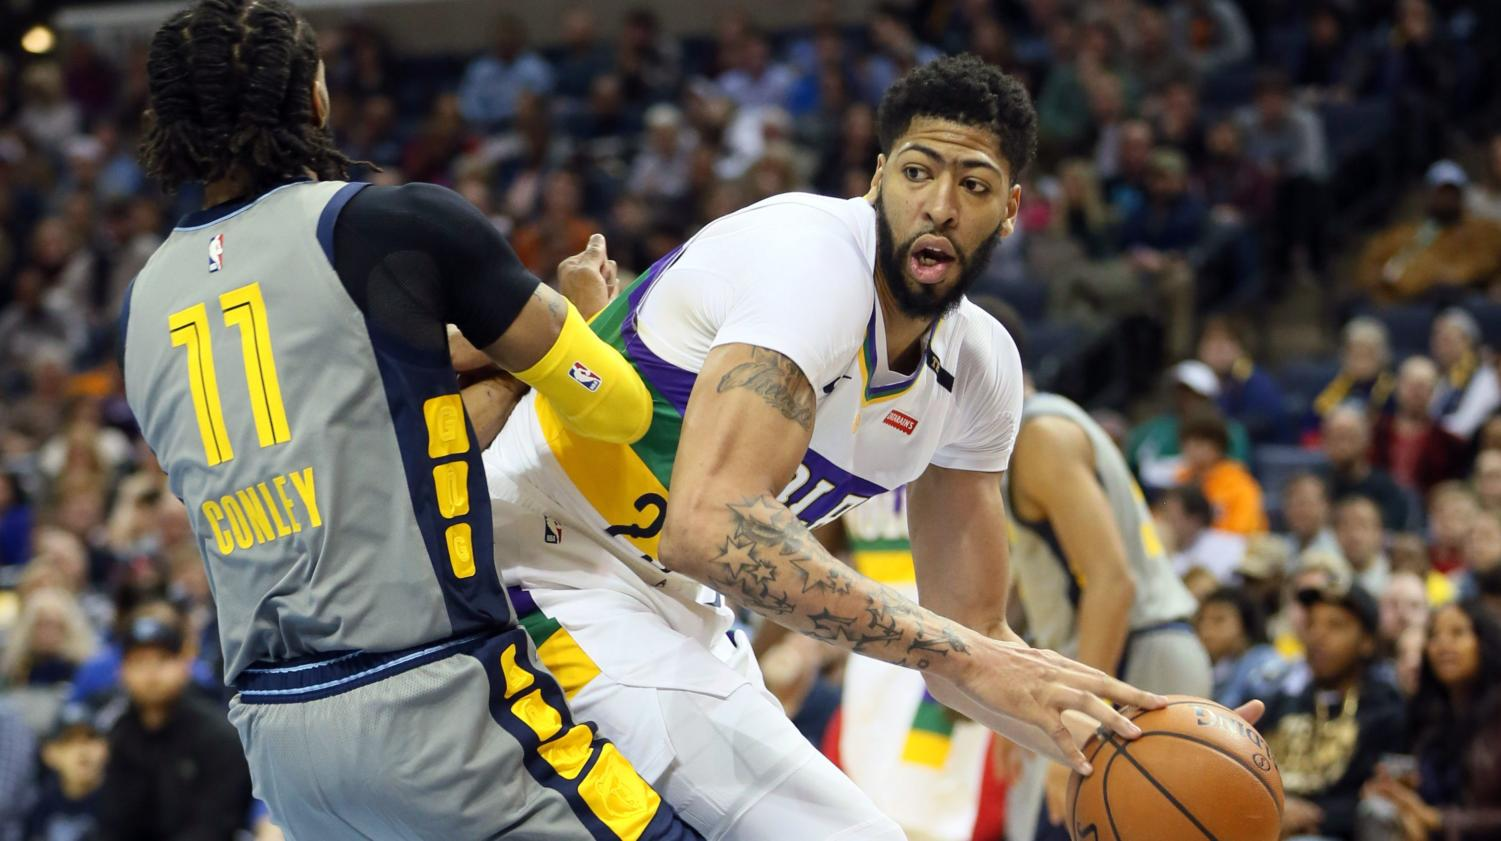 Anthony Davis says he won't play for the Pelicans next year.